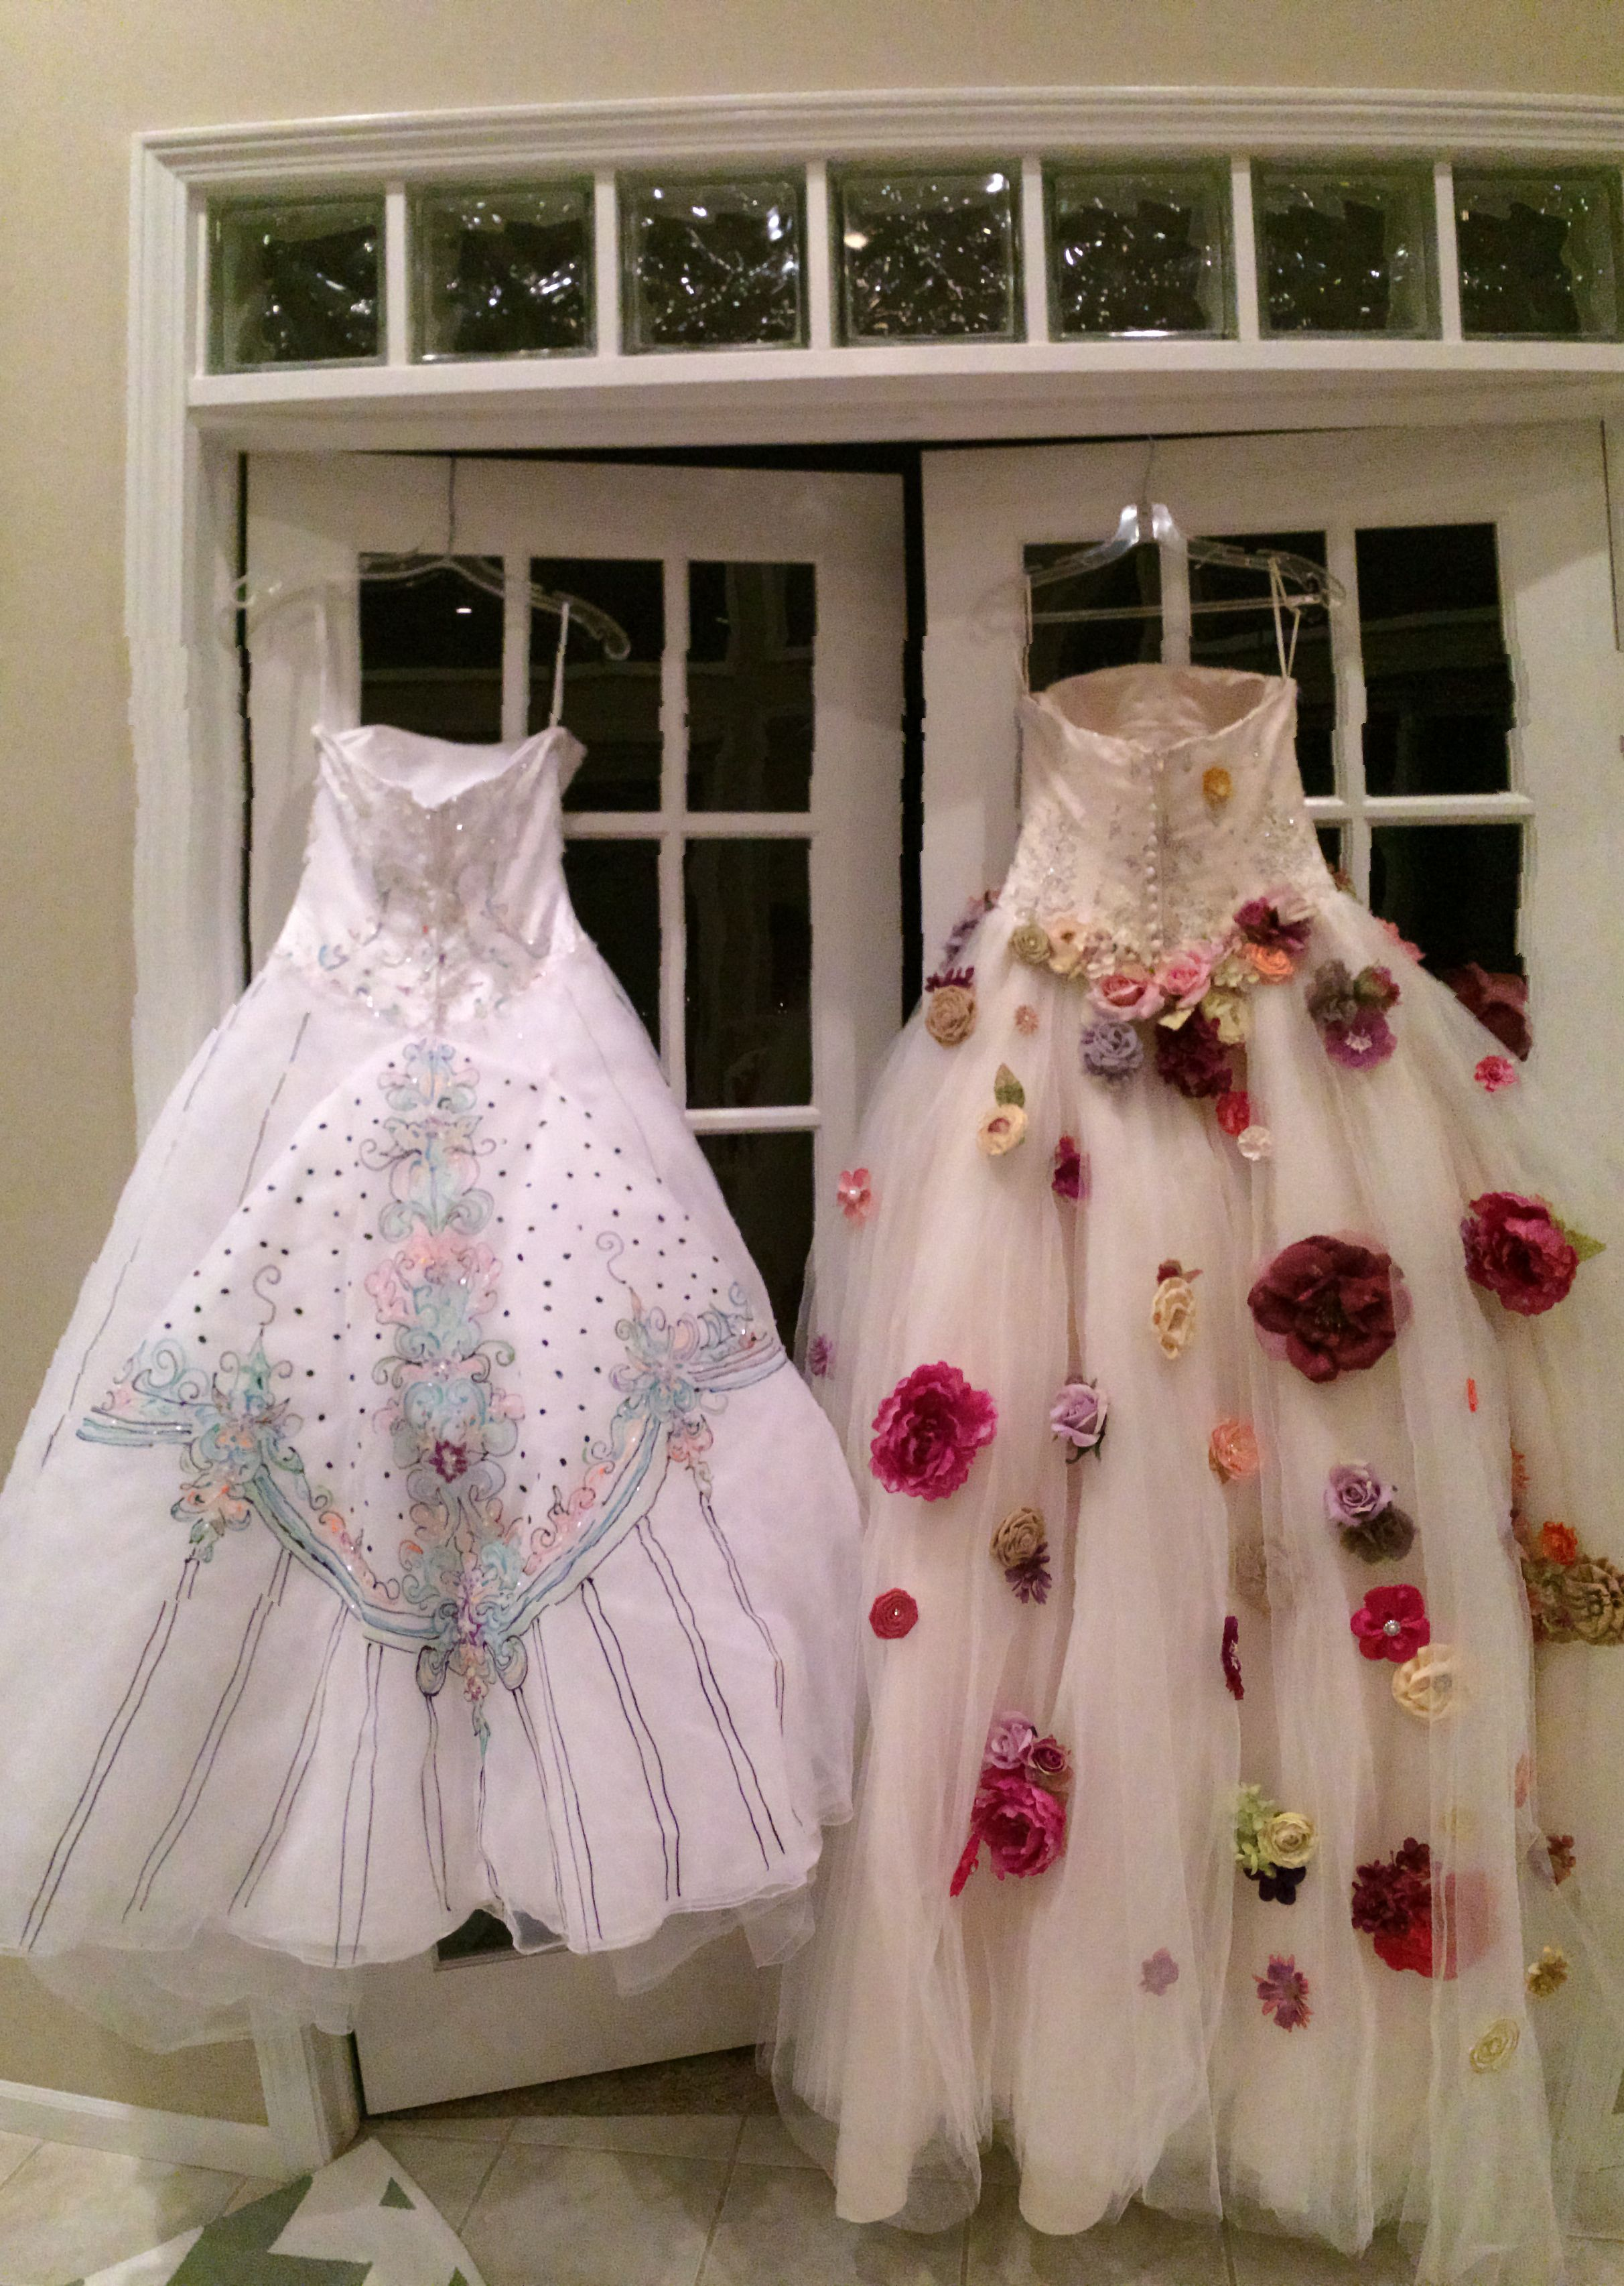 Repurposed Wedding Dresses Puffy Paint And Hot Glued Flowers Got The Dresses At A Dress Auc Diy Prom Dress Wedding Dress Brands Wedding Dress Sewing Patterns [ 3412 x 2424 Pixel ]